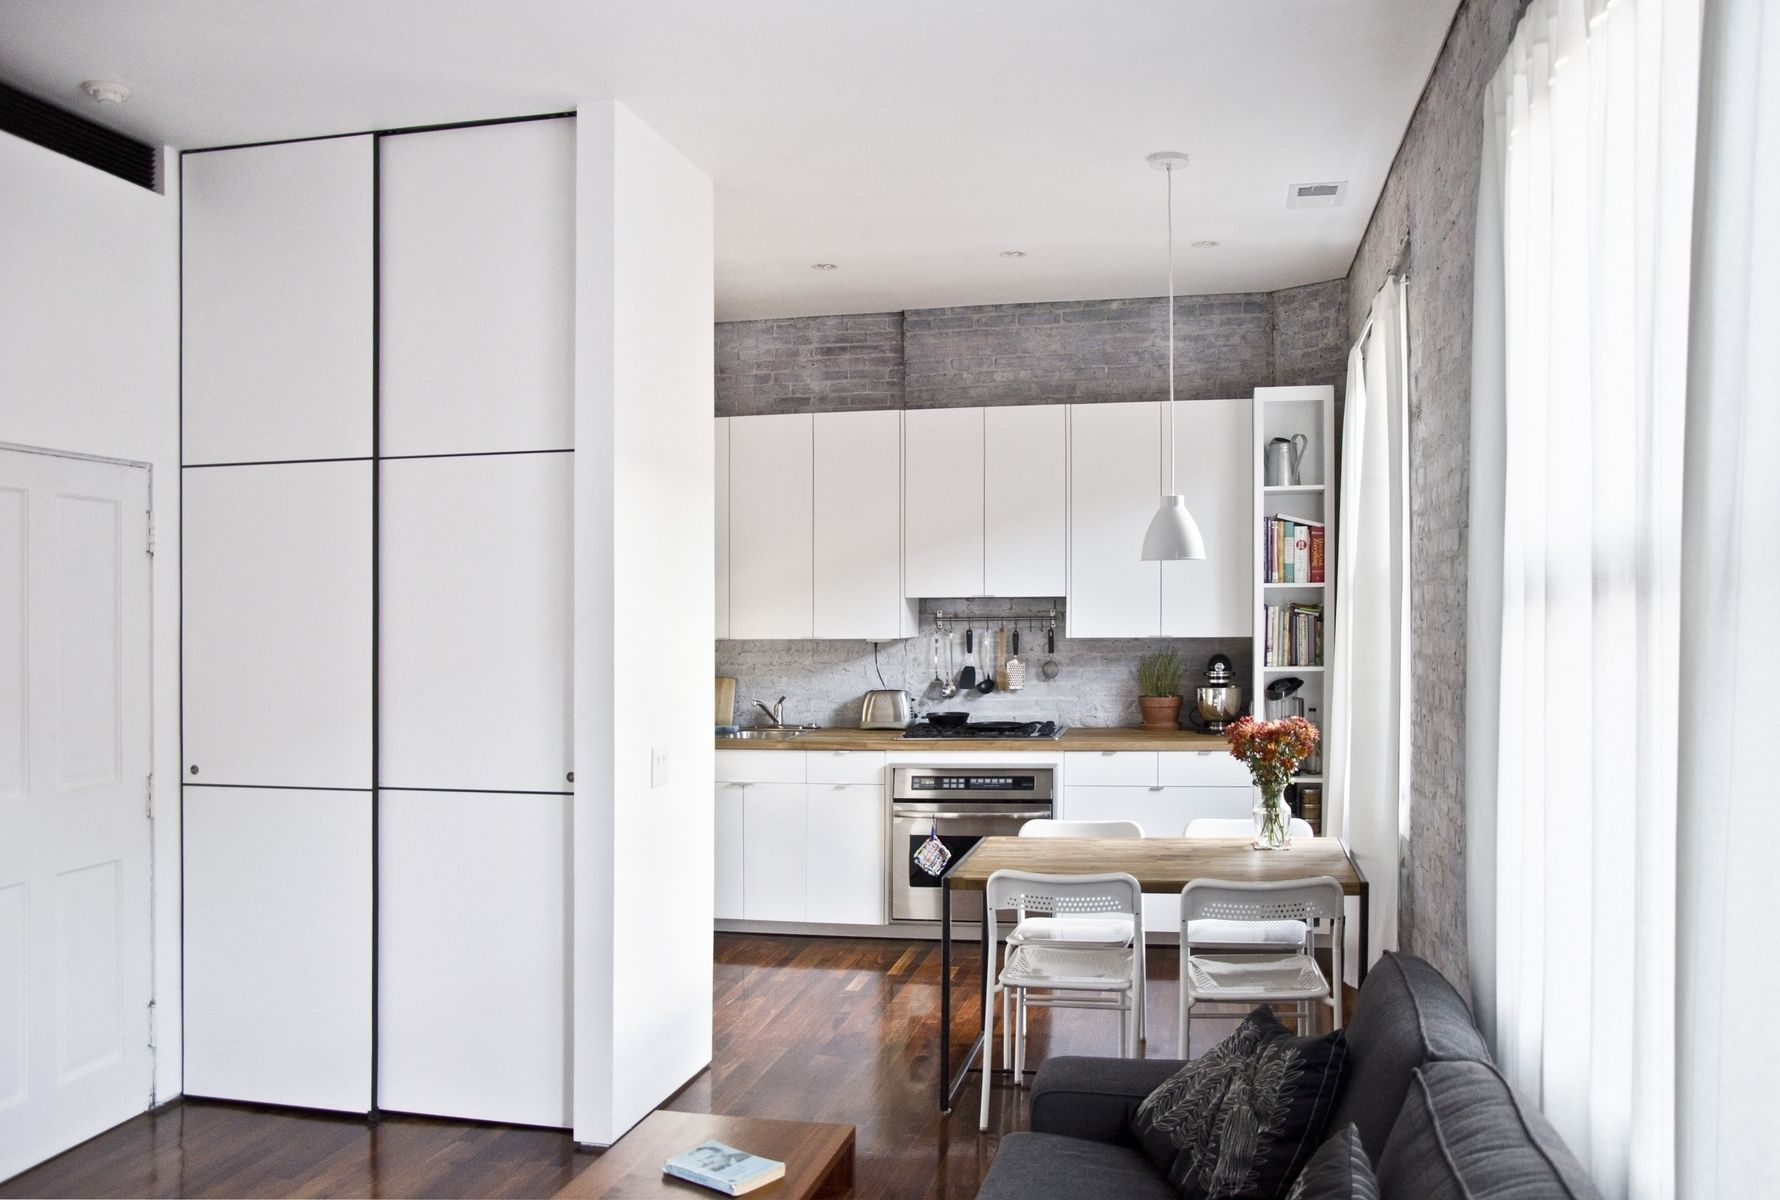 Custom floor to ceiling minimalist closet doors by mato - Small closet space solutions minimalist ...